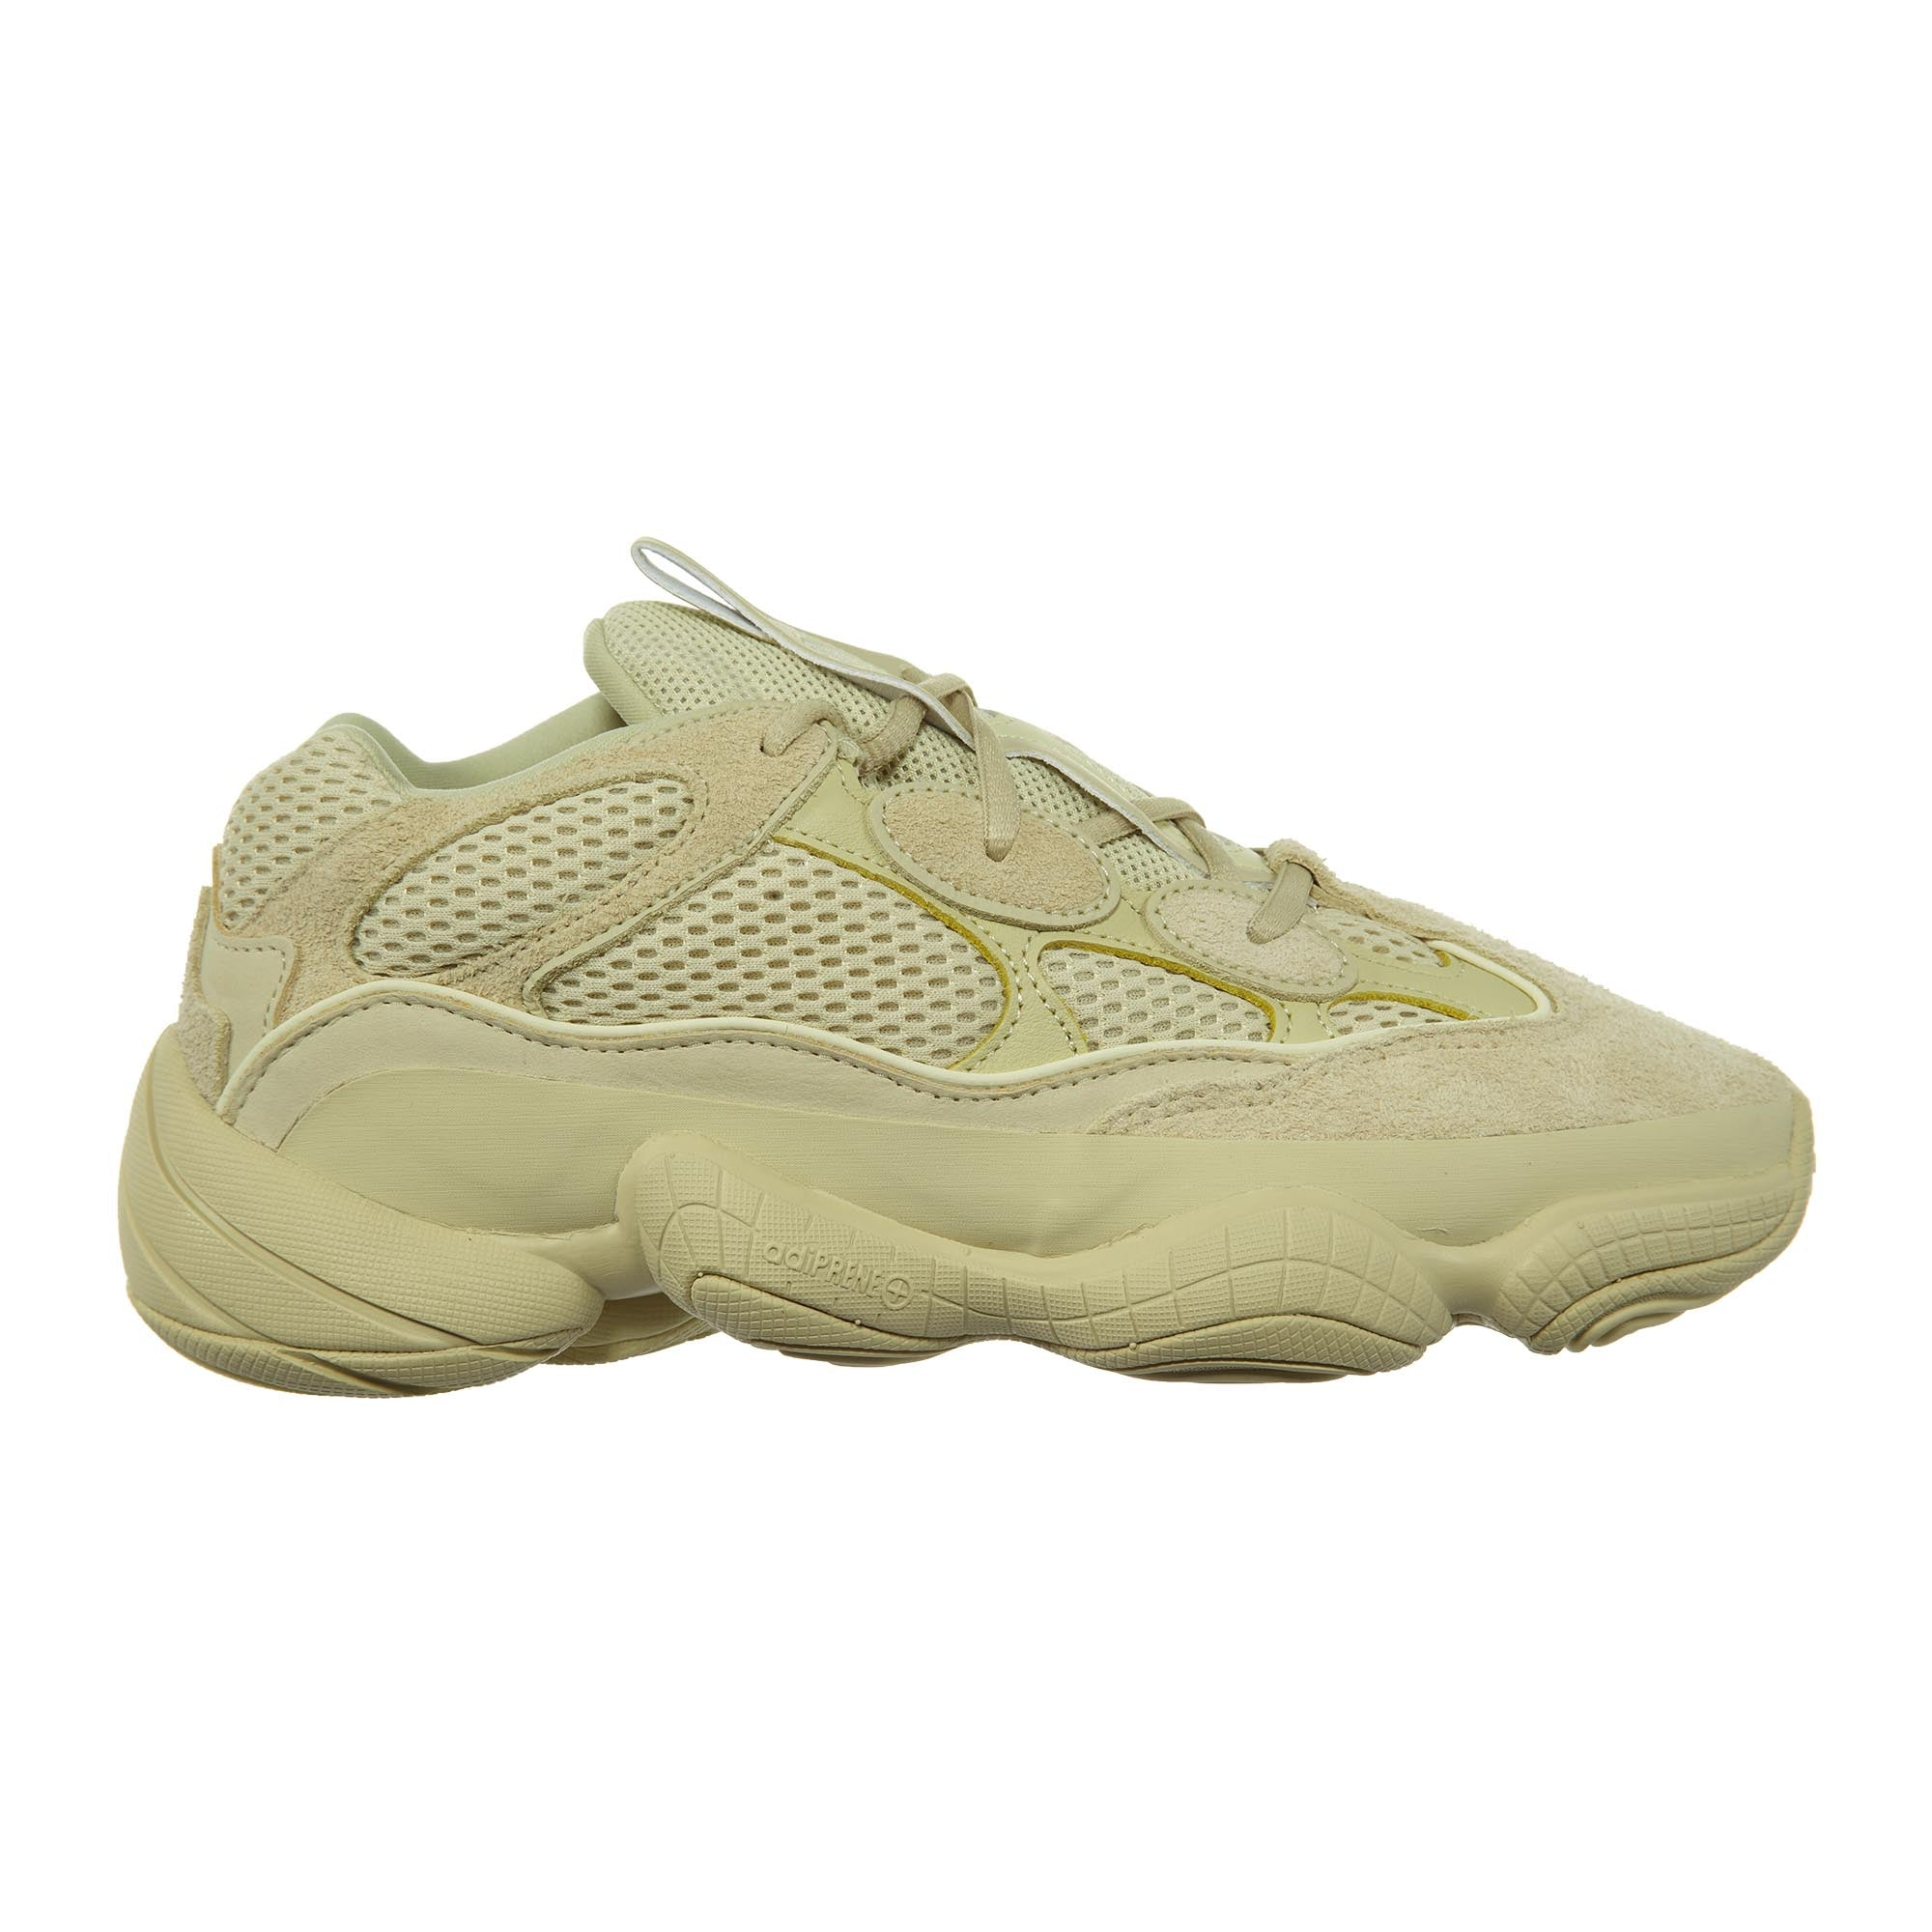 buy popular c683f f6f38 Adidas Yeezy 500 Super Moon Yellow – Sneaker Experts